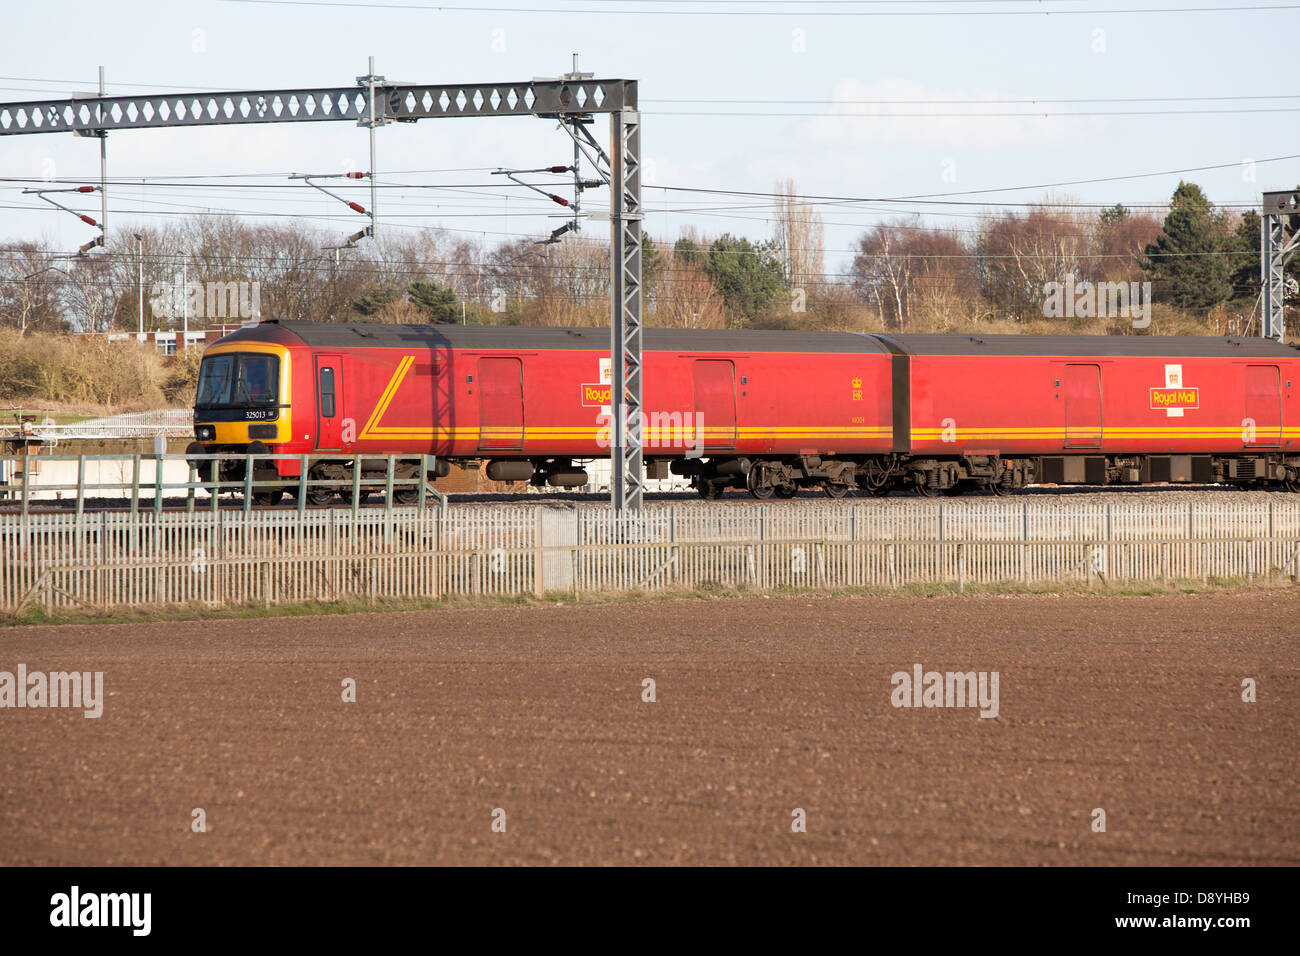 A Royal Mail train on the electrified West Coast Main Line railway in Staffordshire. - Stock Image